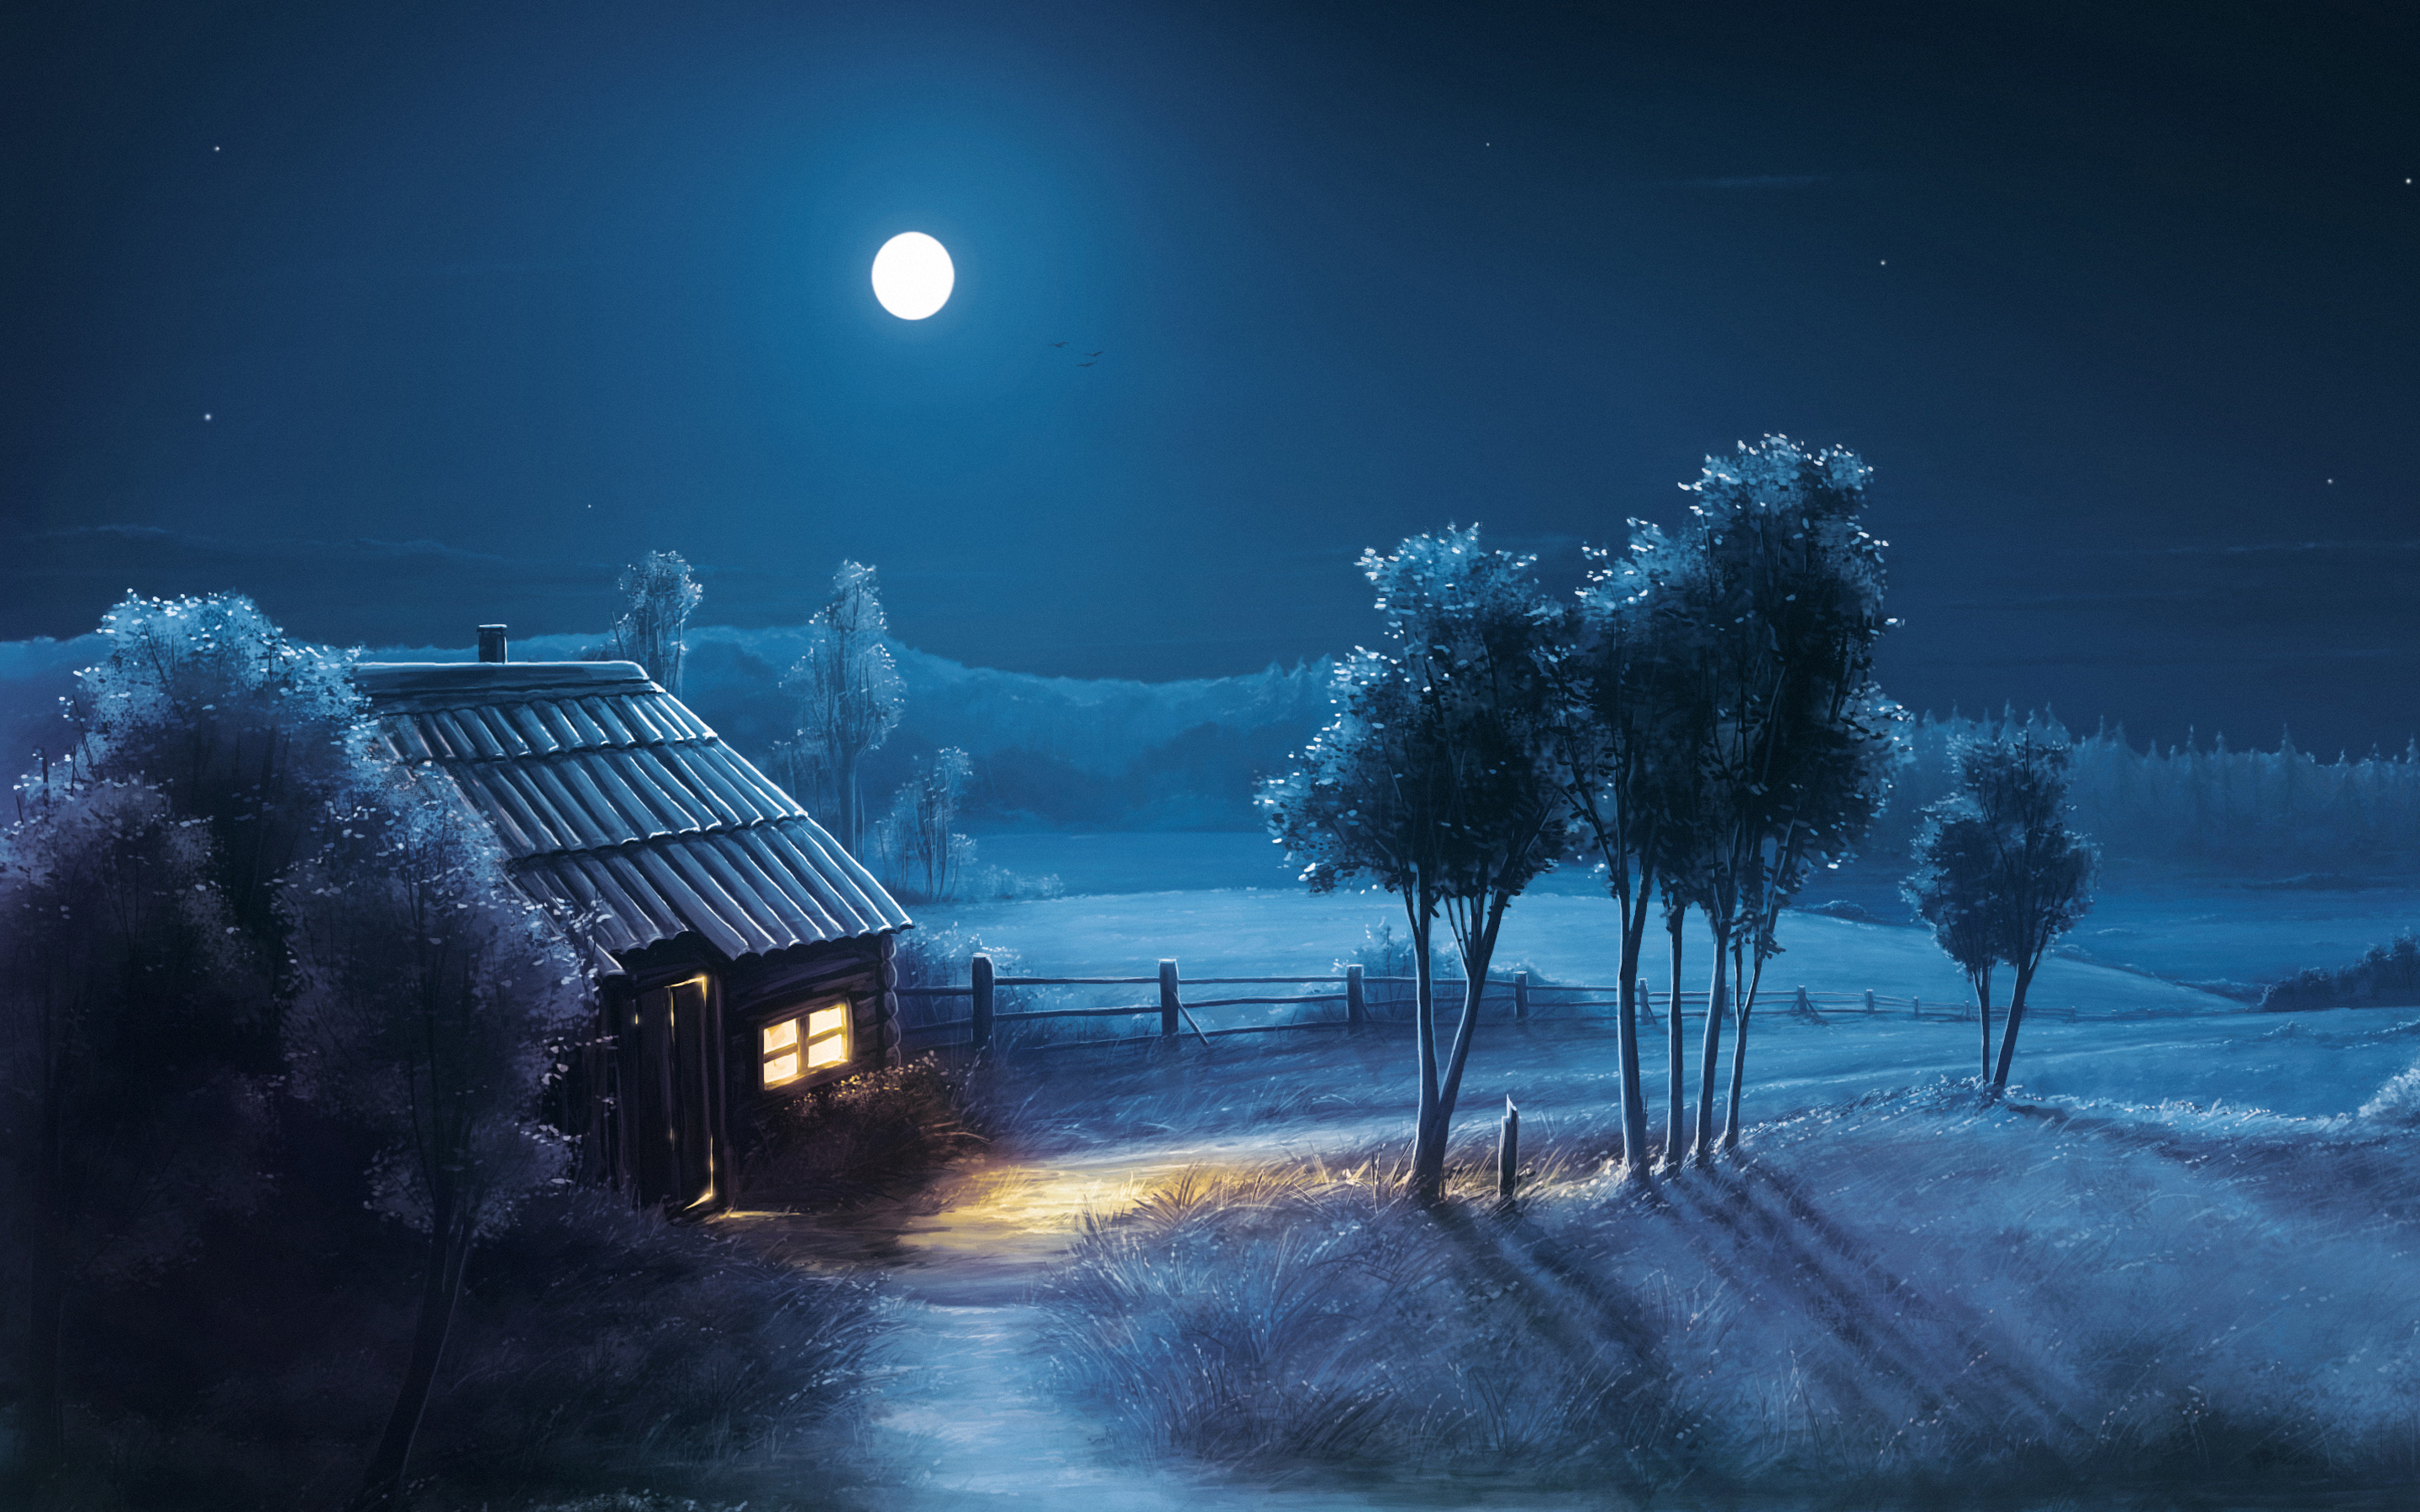 Blue Night Full Moon Scenery HD Wallpaper 2880x1800